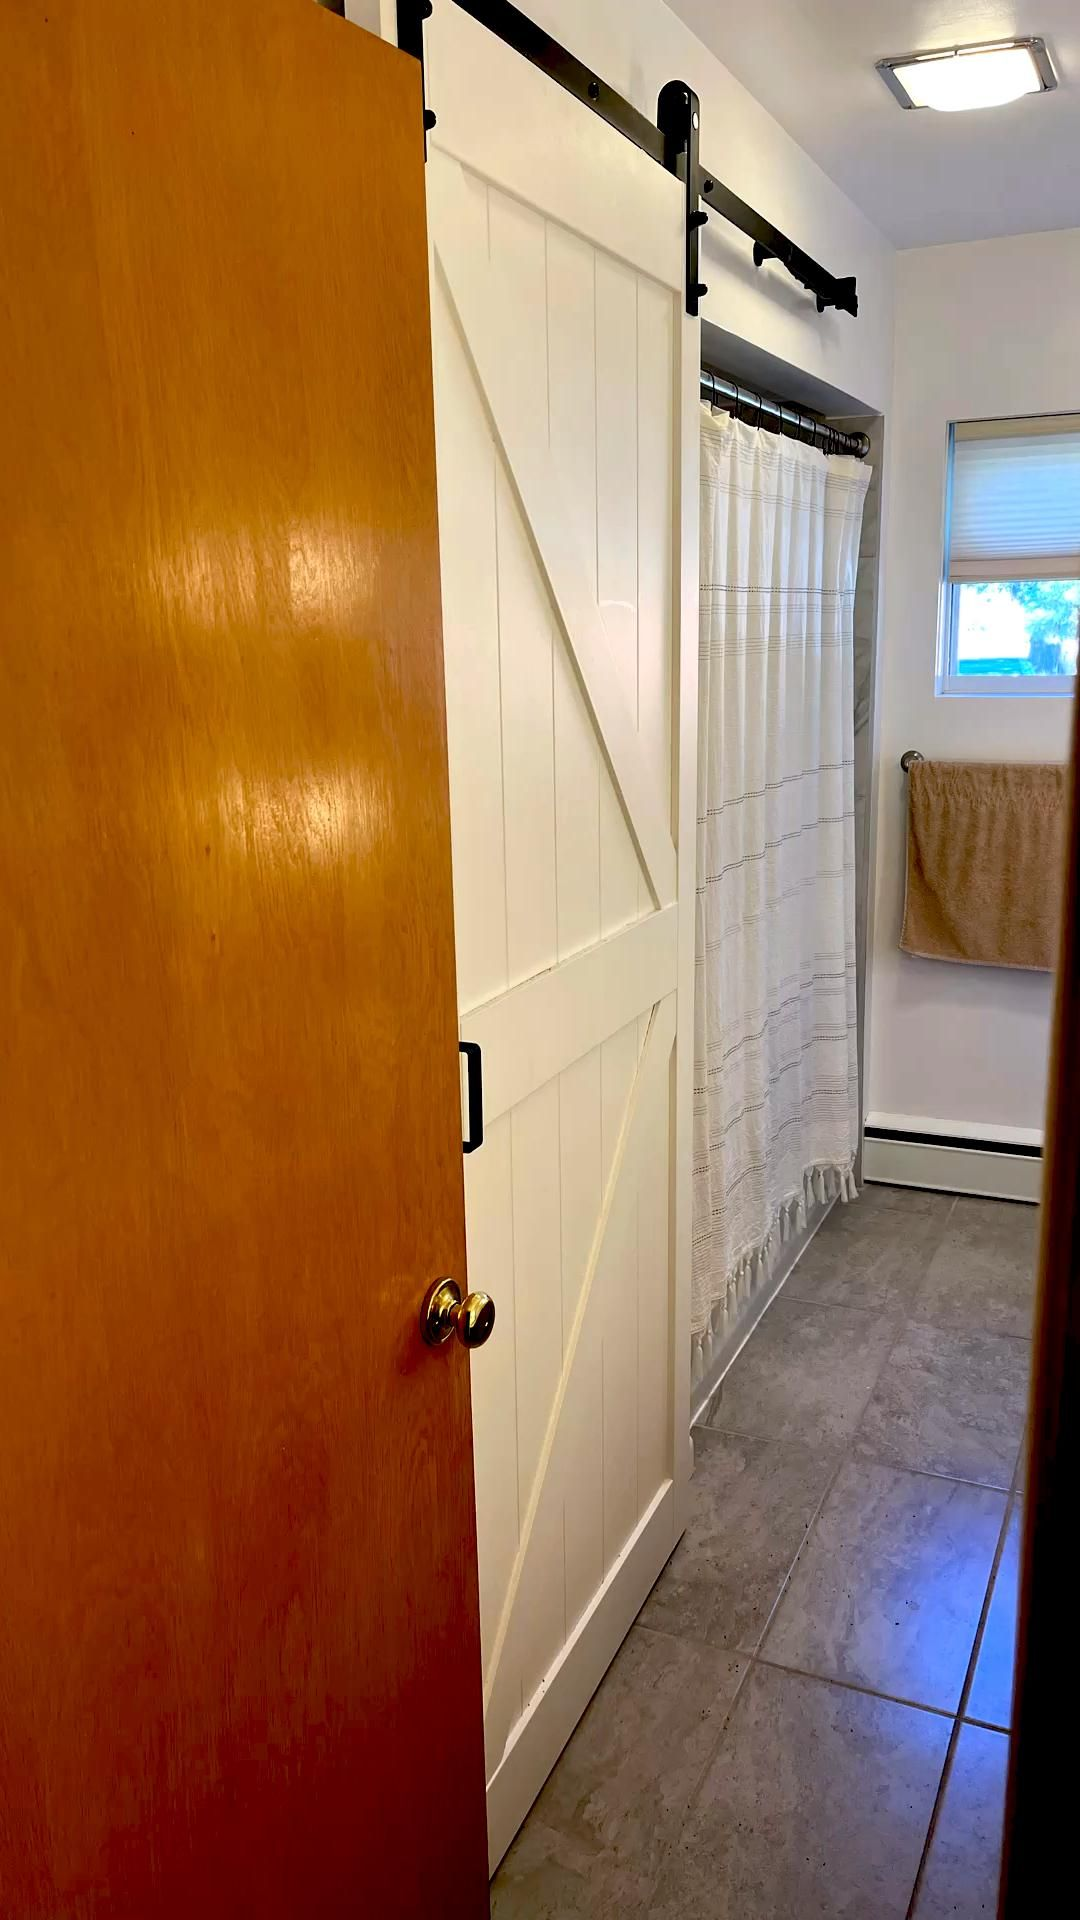 Barn doors for the bathroom closet. Created so much more roo…